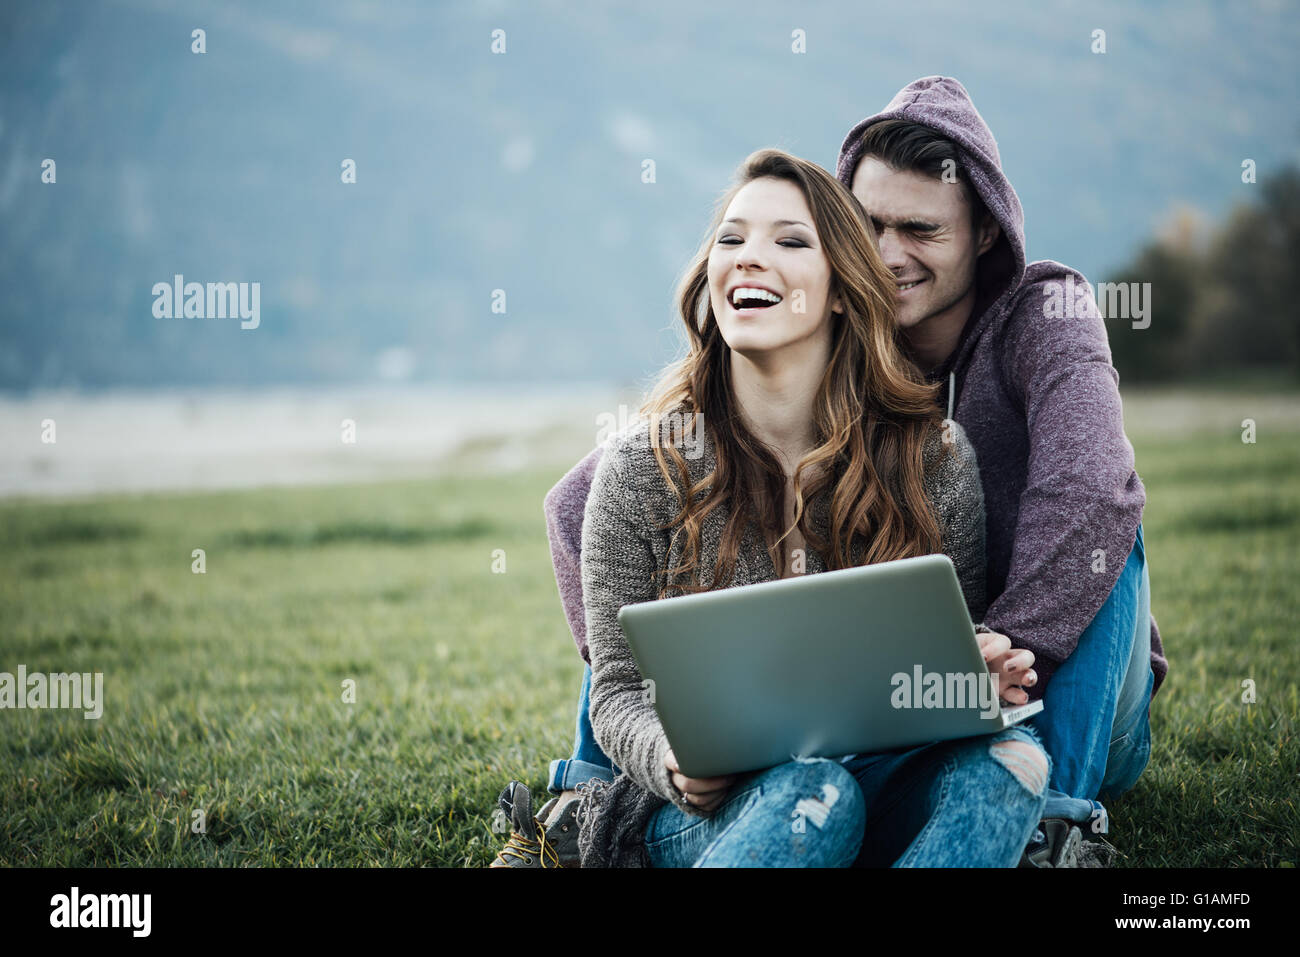 Playful young couple sitting on the grass outdoors, hugging and social networking with a laptop, love and relationships - Stock Image